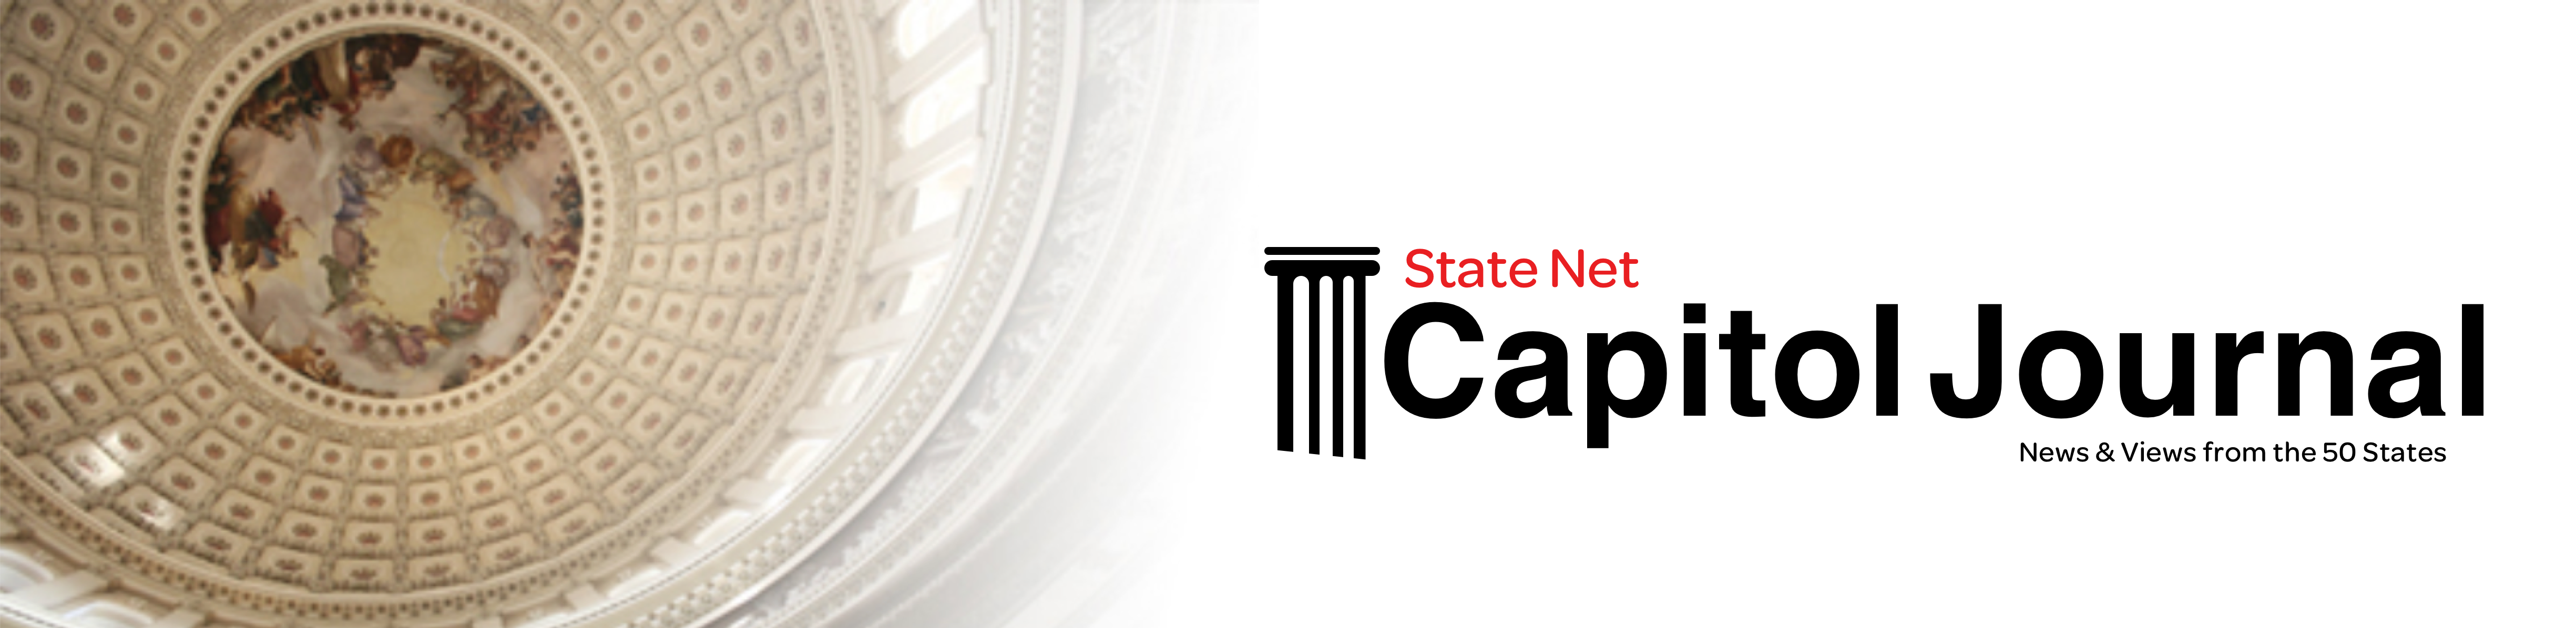 State Net Capitol Journal--News & Views from the 50 States